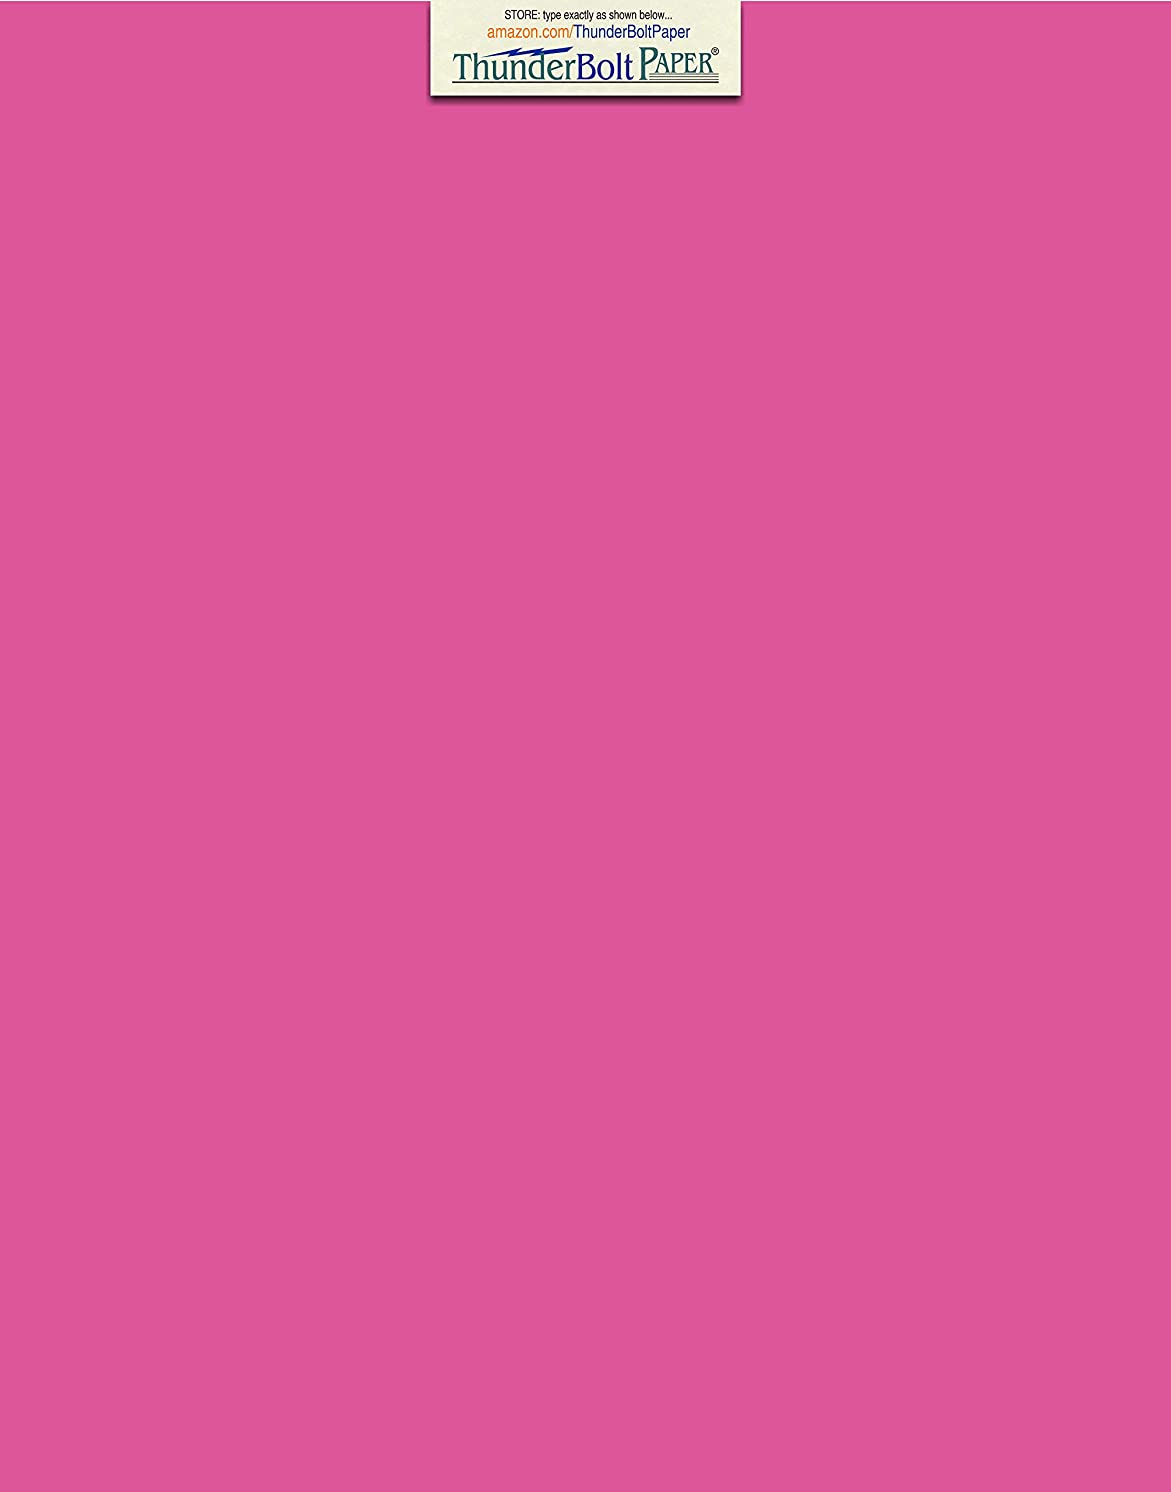 25 Bright Hot Pink 65lb Cover|Card Paper - 11 X 14 Inches Scrapbook|Picture-Frame Size - 65 lb/Pound Light Weight Cardstock - Quality Printable Smooth Surface for Bright Colorful Results